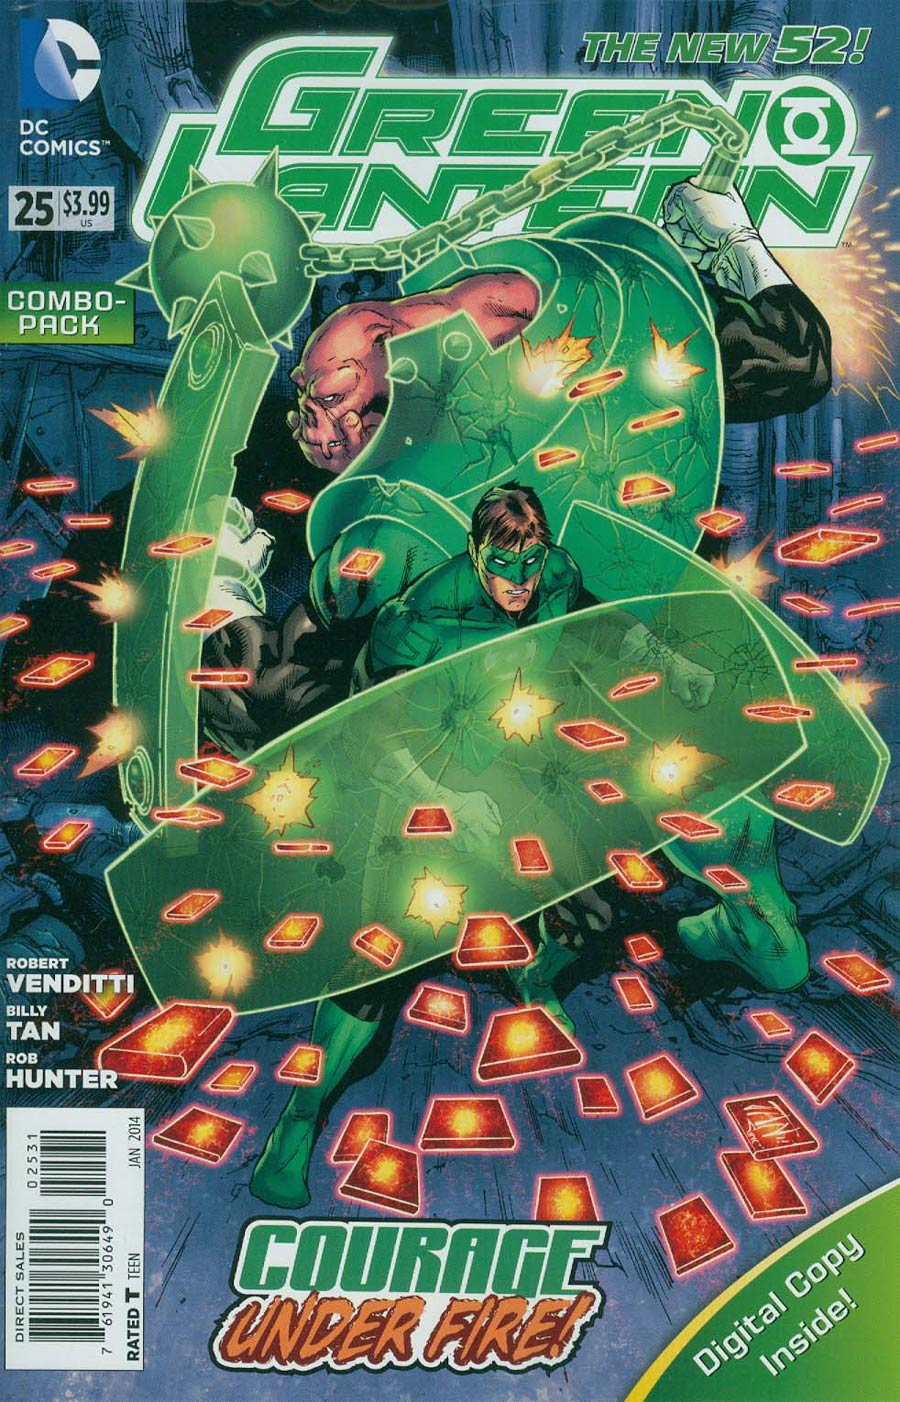 Green Lantern Vol 5 #25 Cover B Combo Pack With Polybag